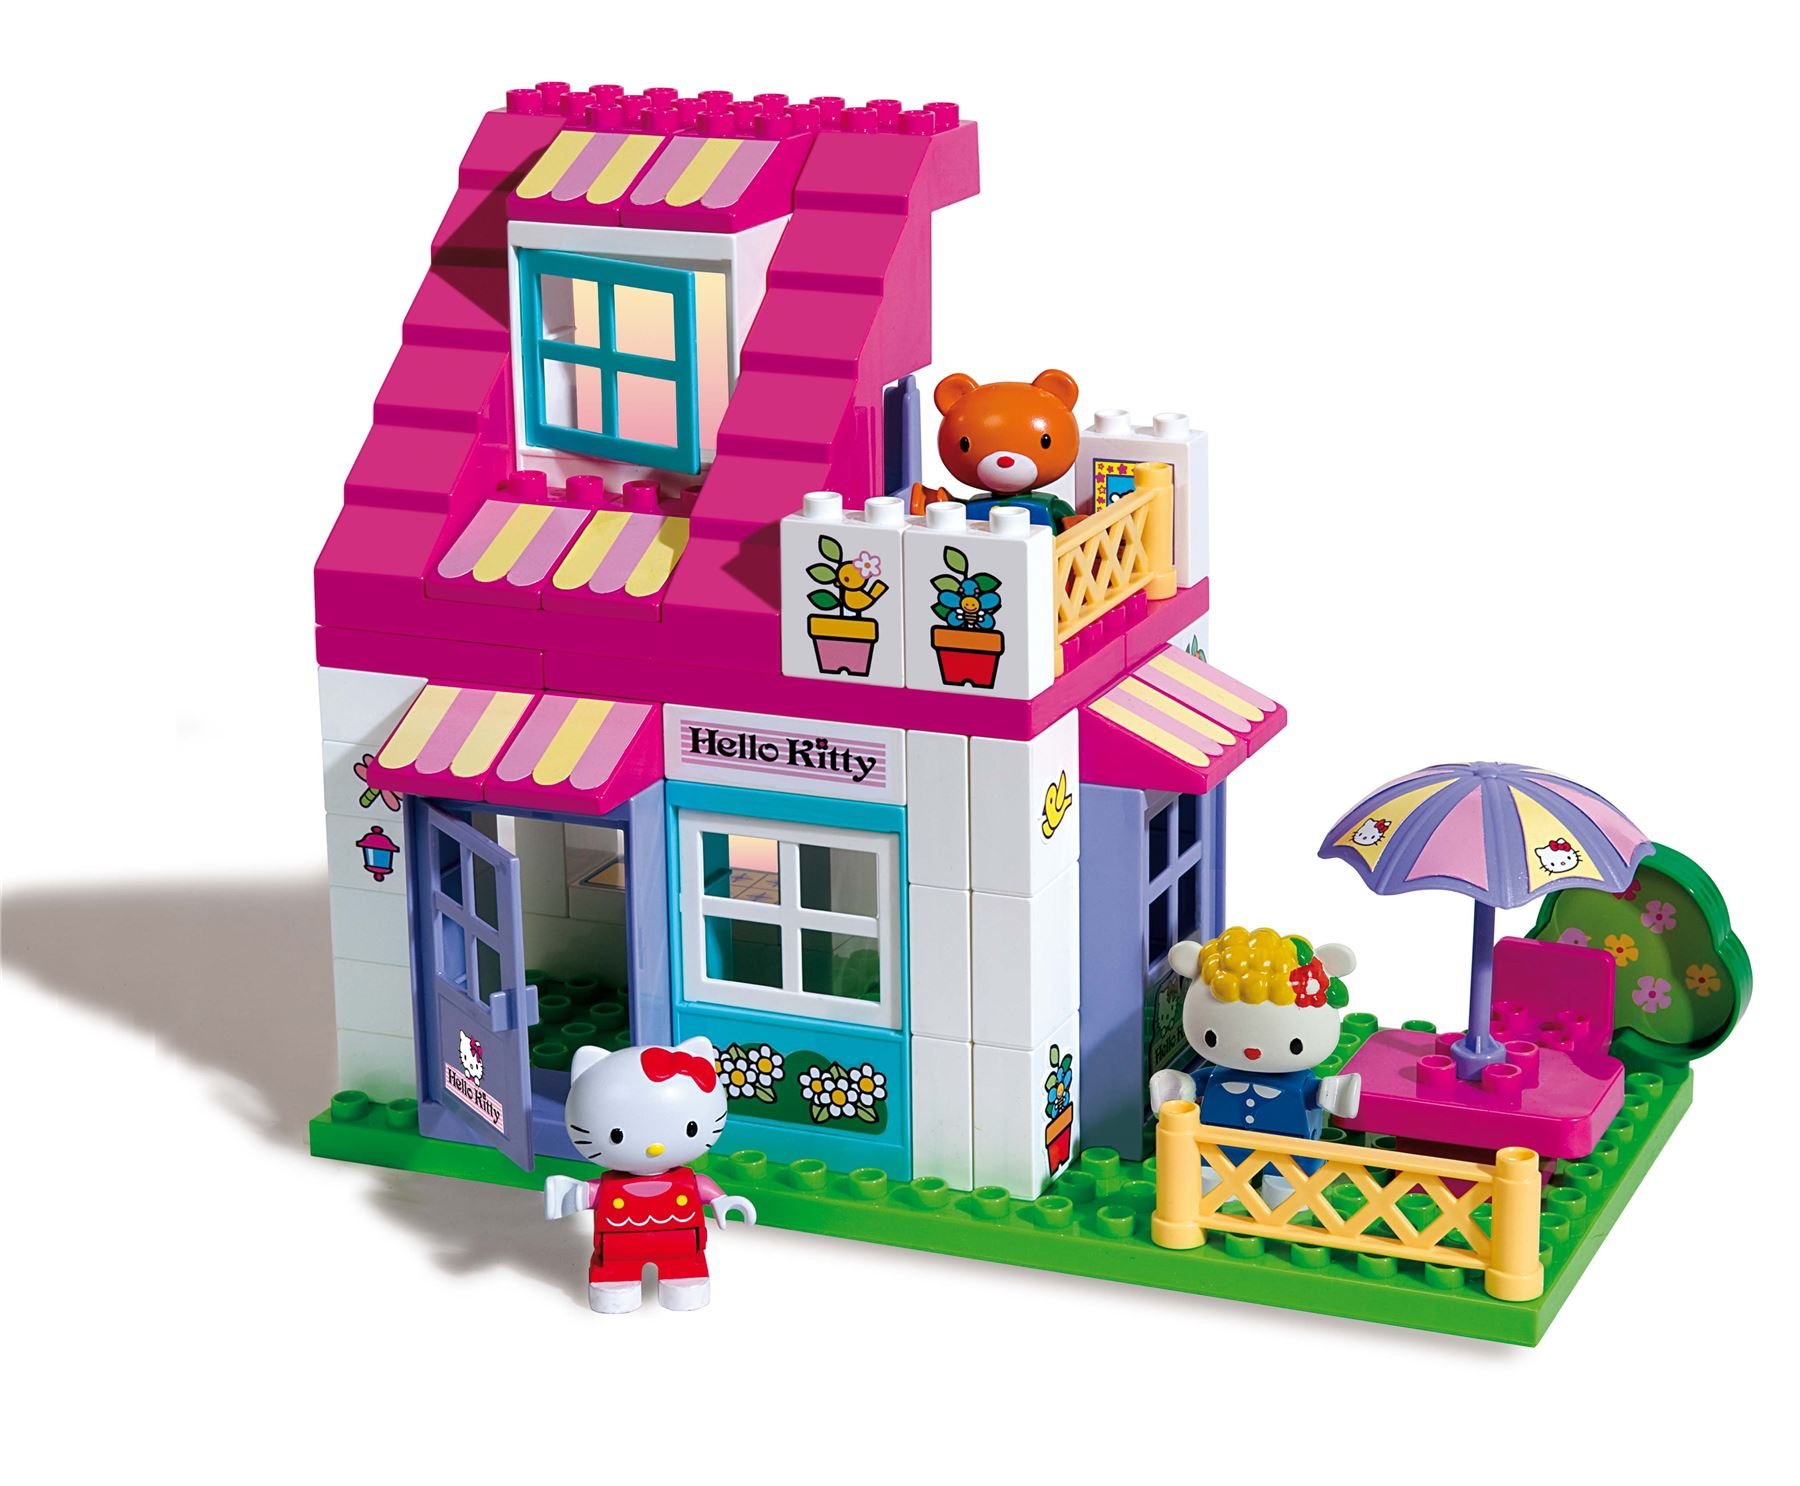 HELLO KITTY  Mookie 59piece House Unico Set  Building Bricks  eBay